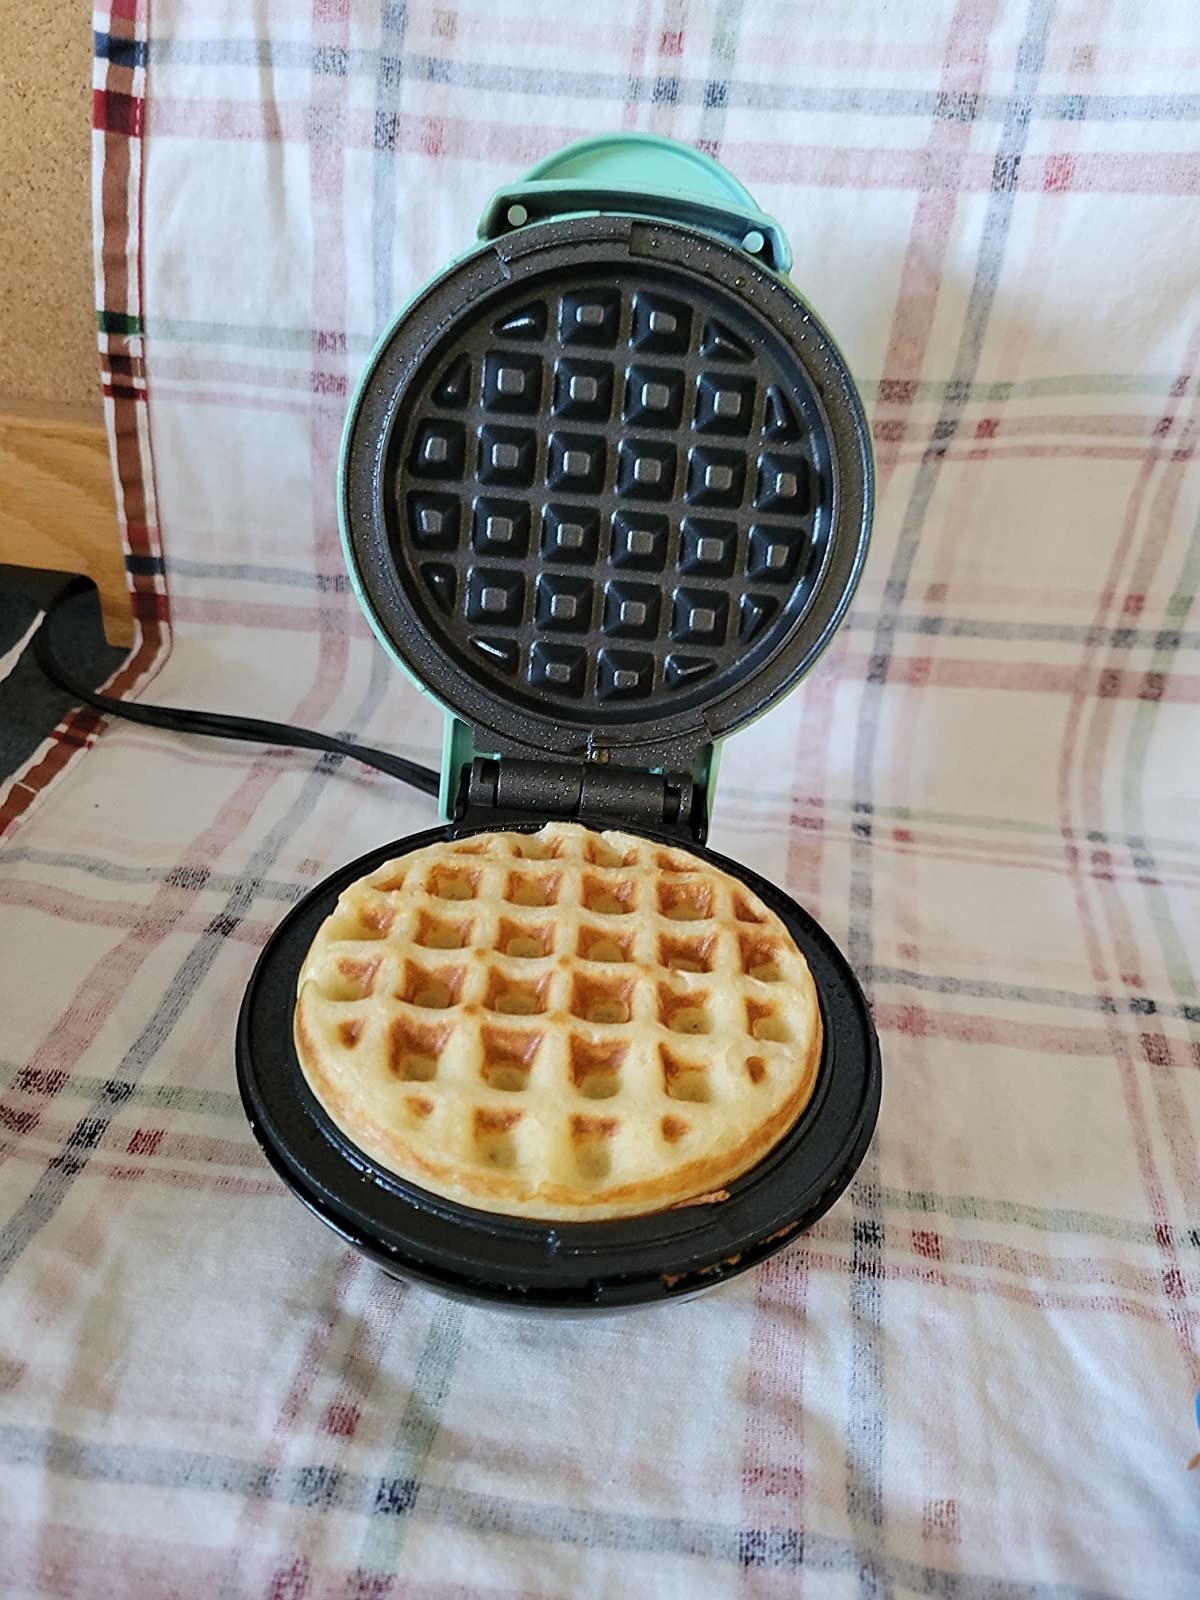 A reviewer photo of the waffle iron in use